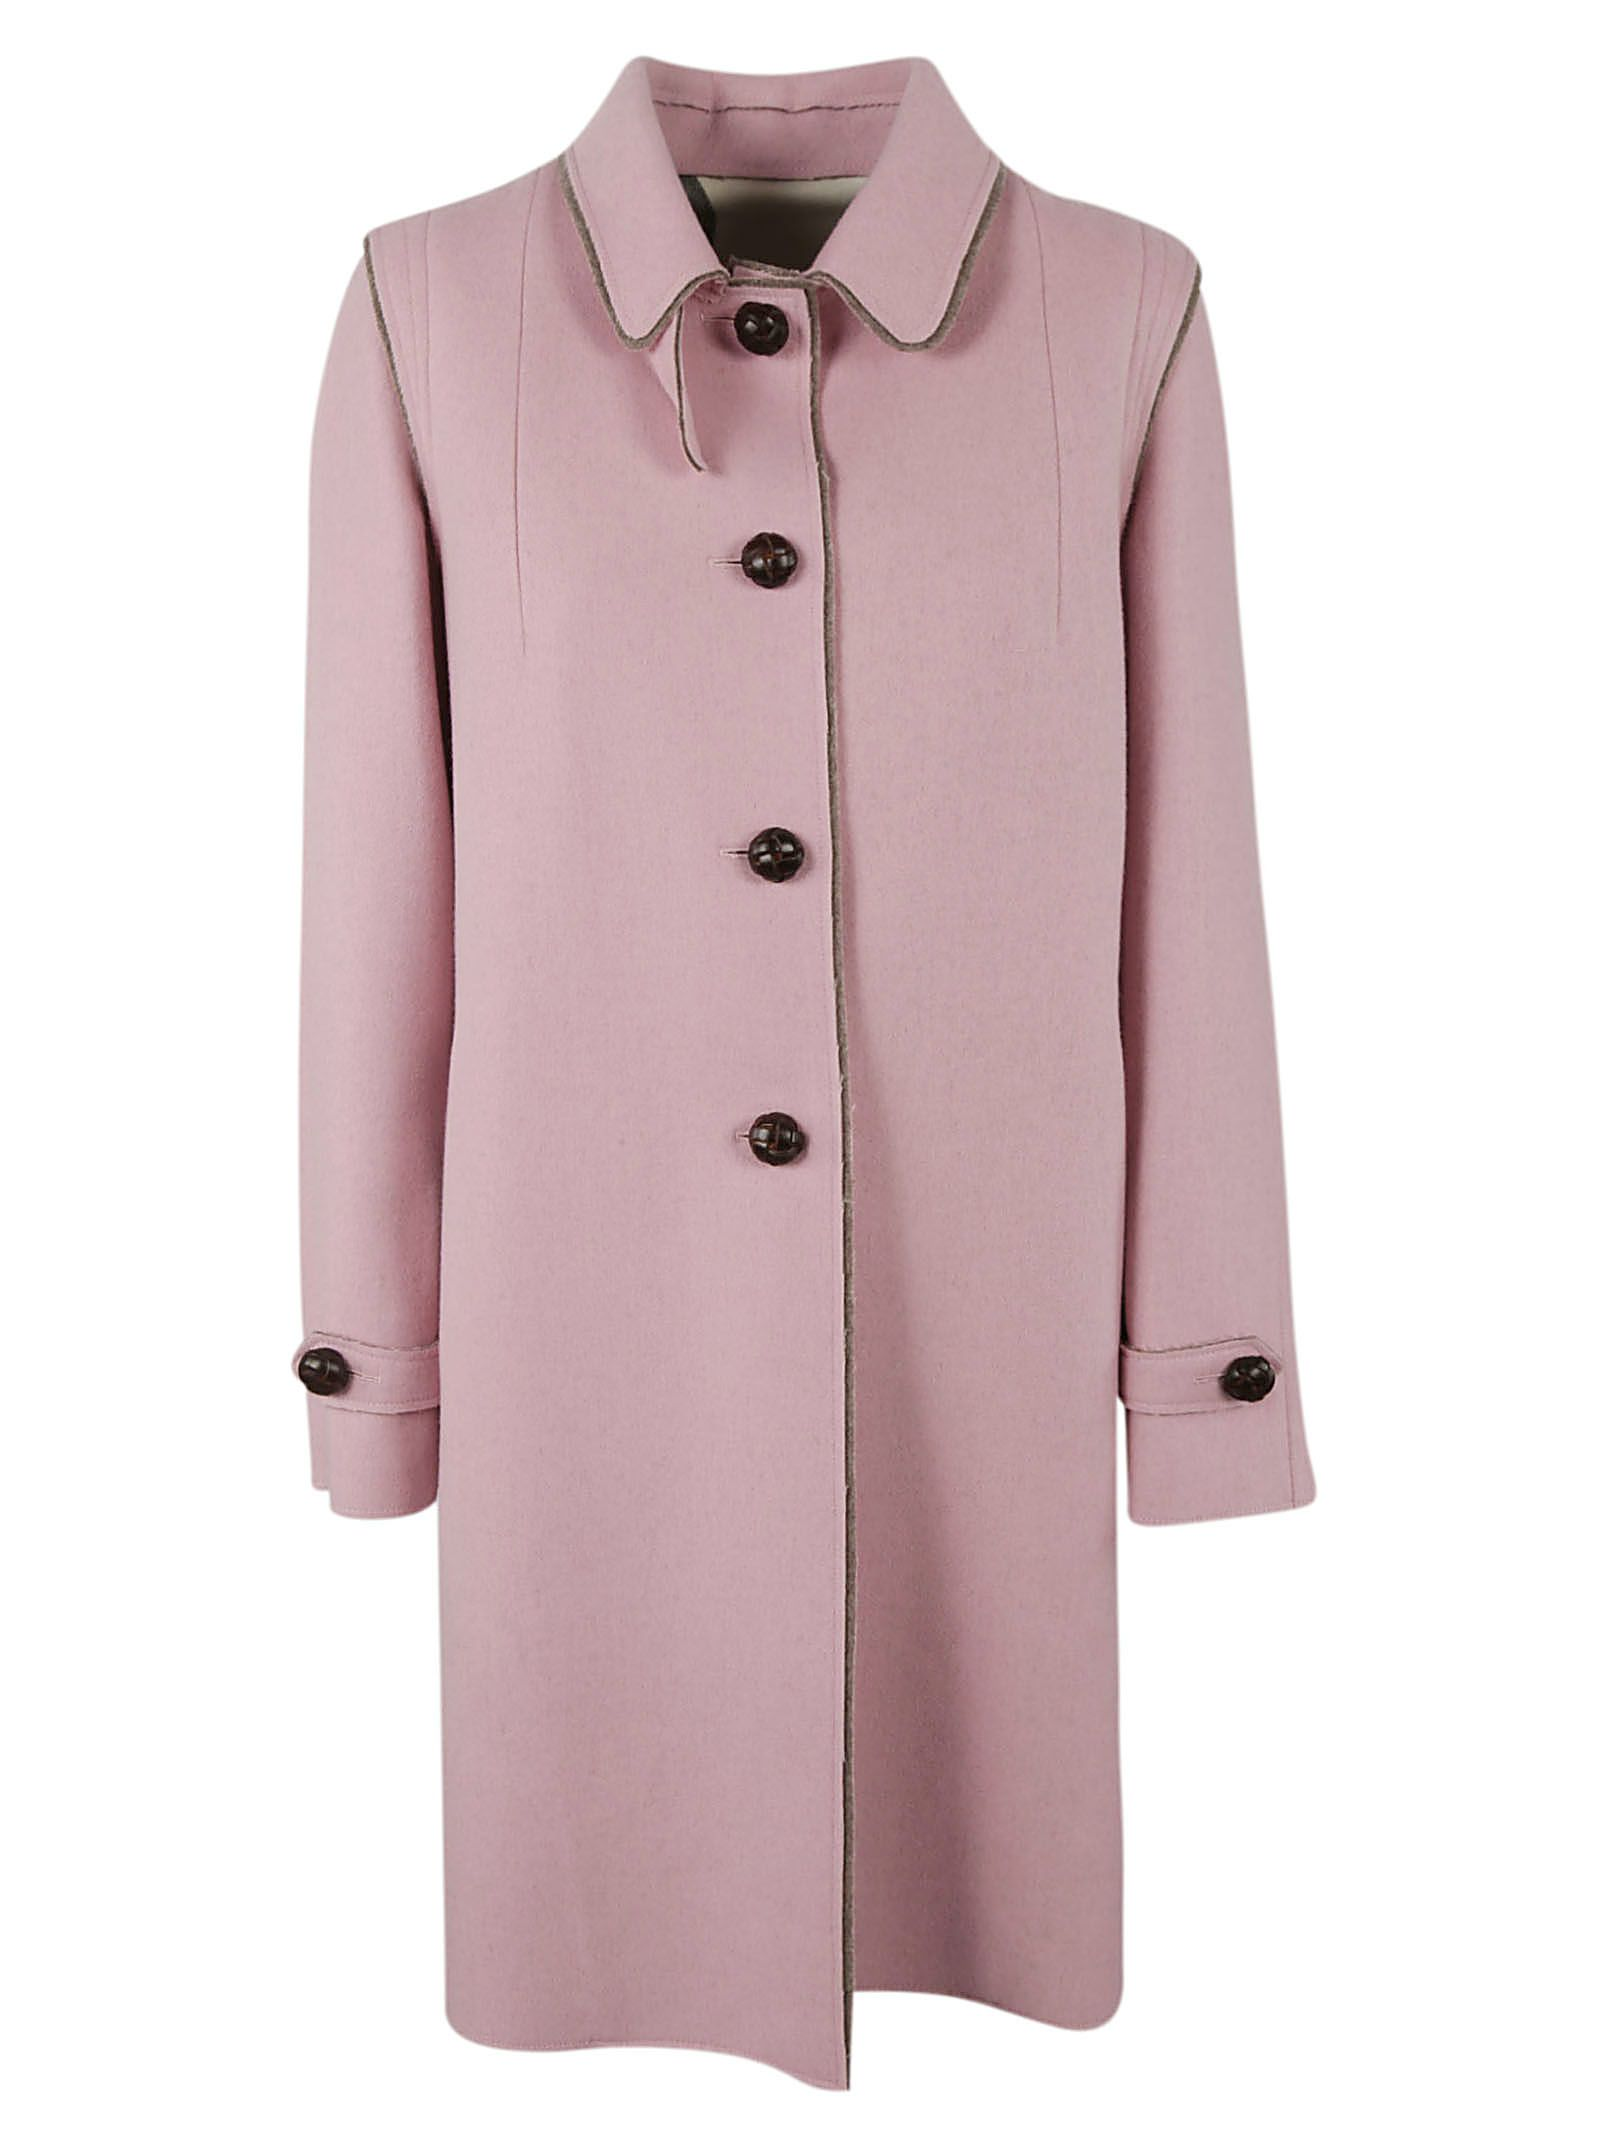 LODENTAL Lodental Single-Breasted Coat in Pink